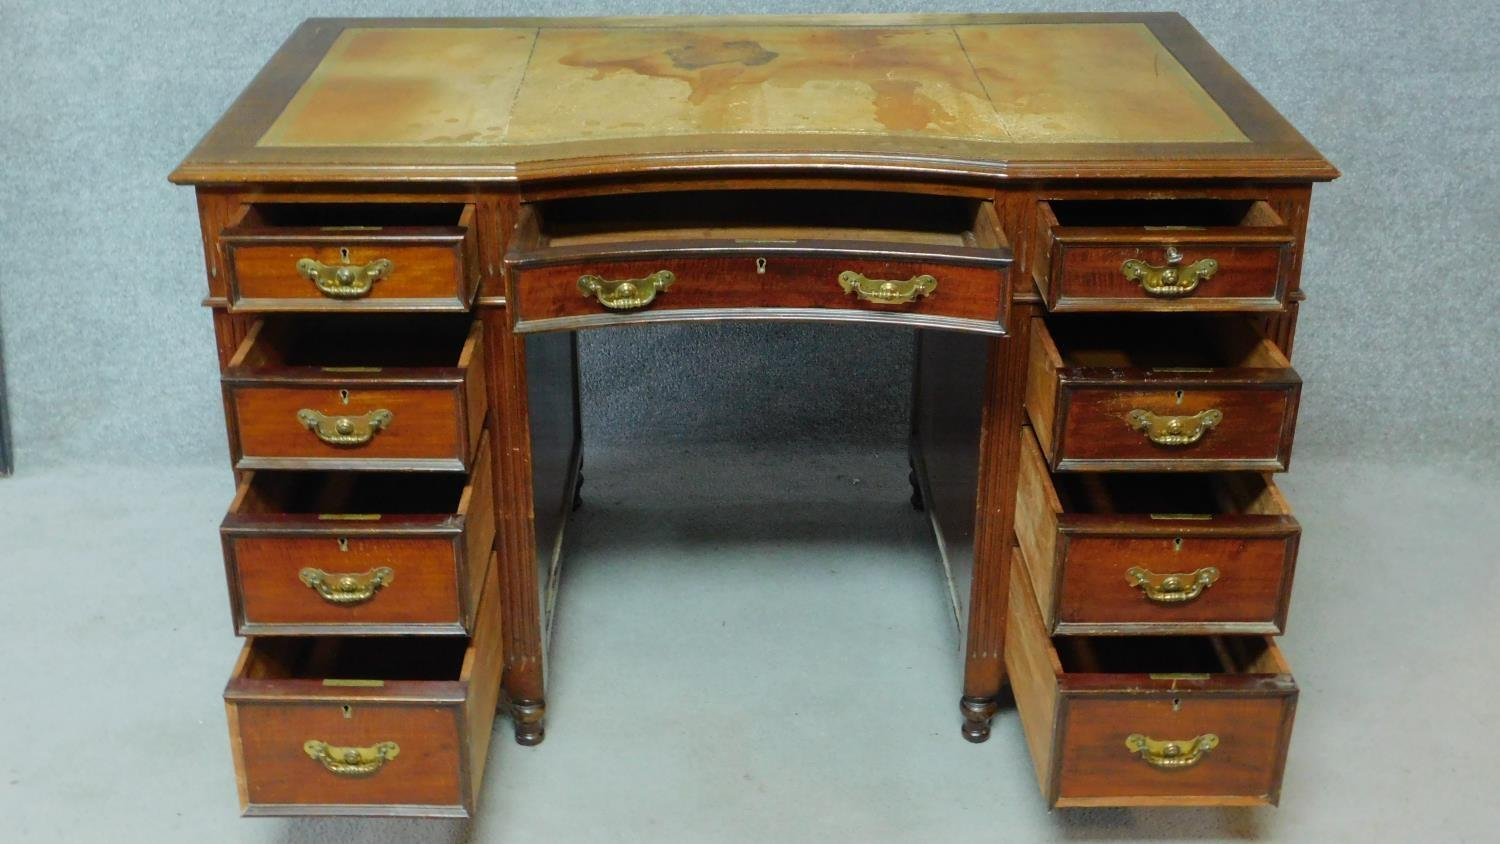 A late 19th century mahogany pedestal desk with leather inset top above an arrangement of nine - Image 3 of 7